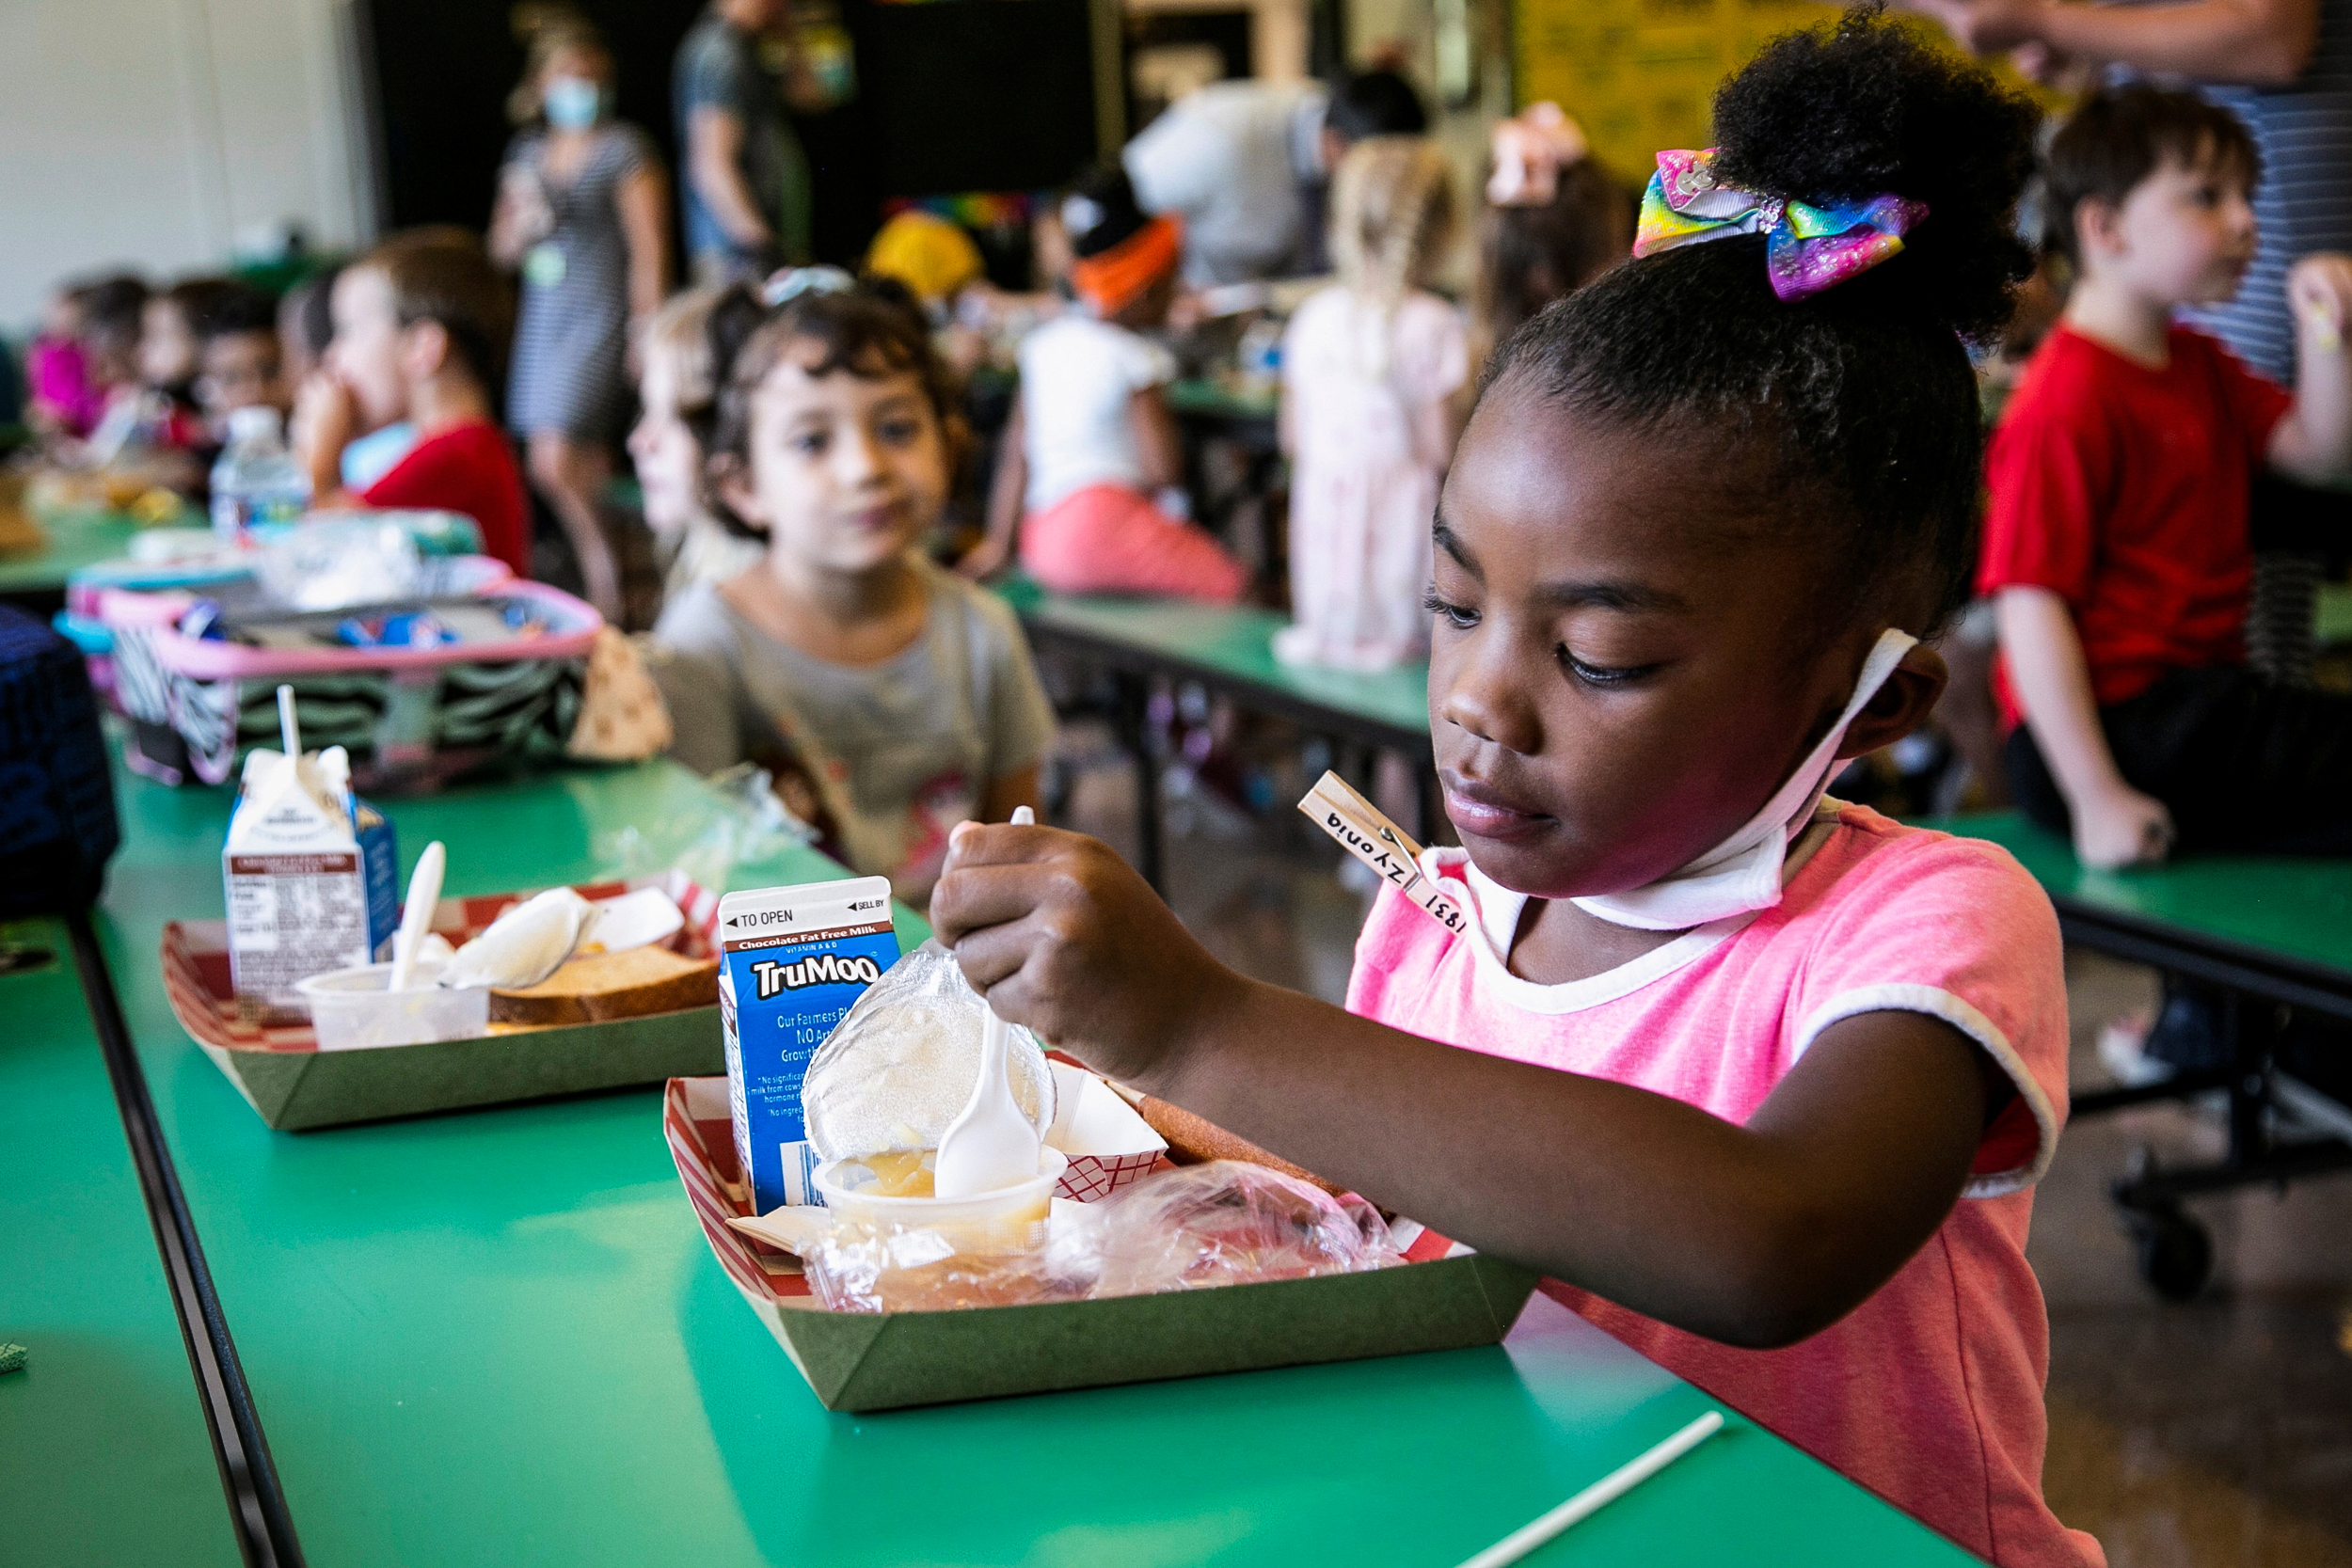 Hopes for a better school year dim as staff struggle to put food on school lunch plates